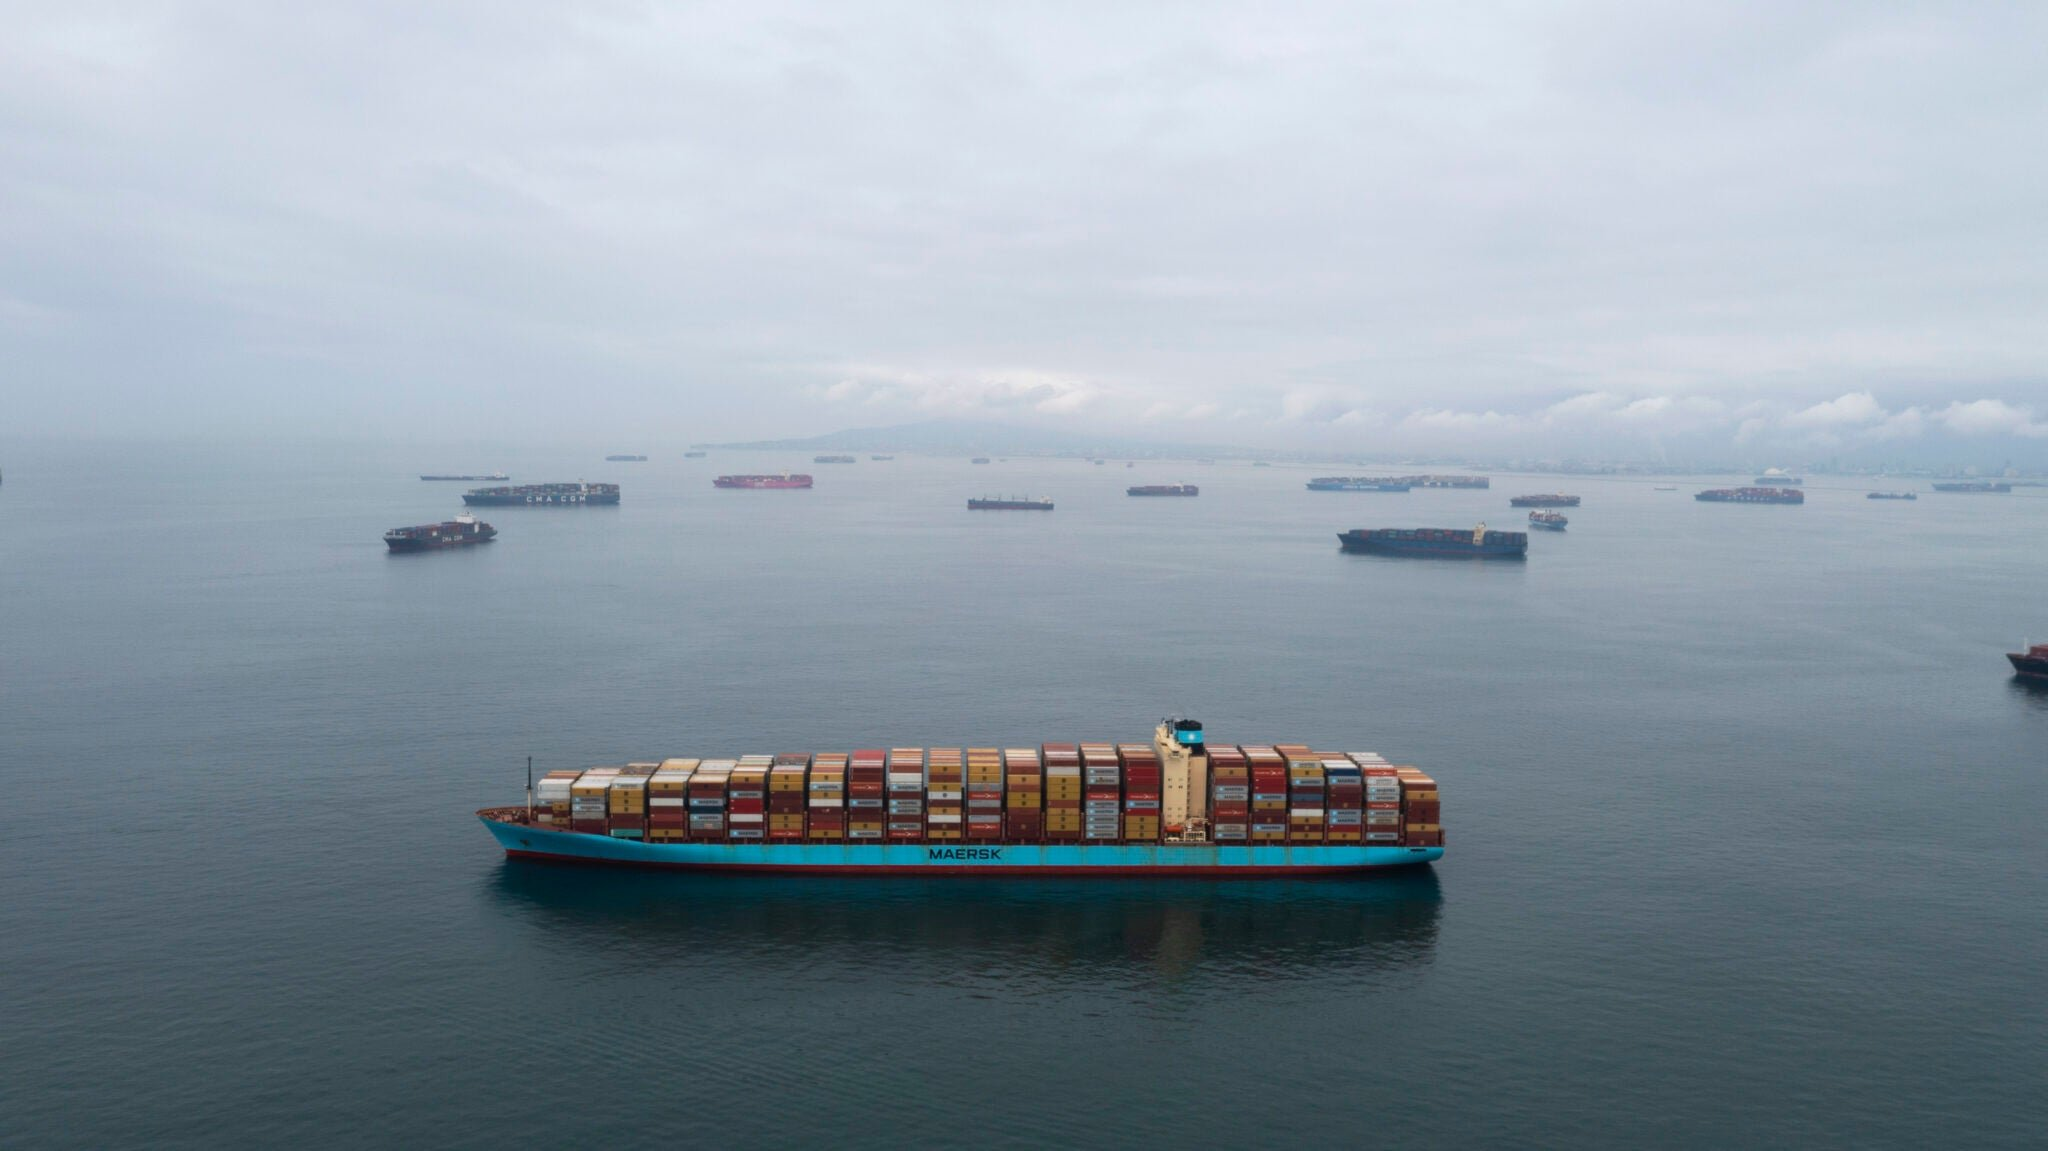 Nearly 100 container ships are suddenly stranded off the coast of California